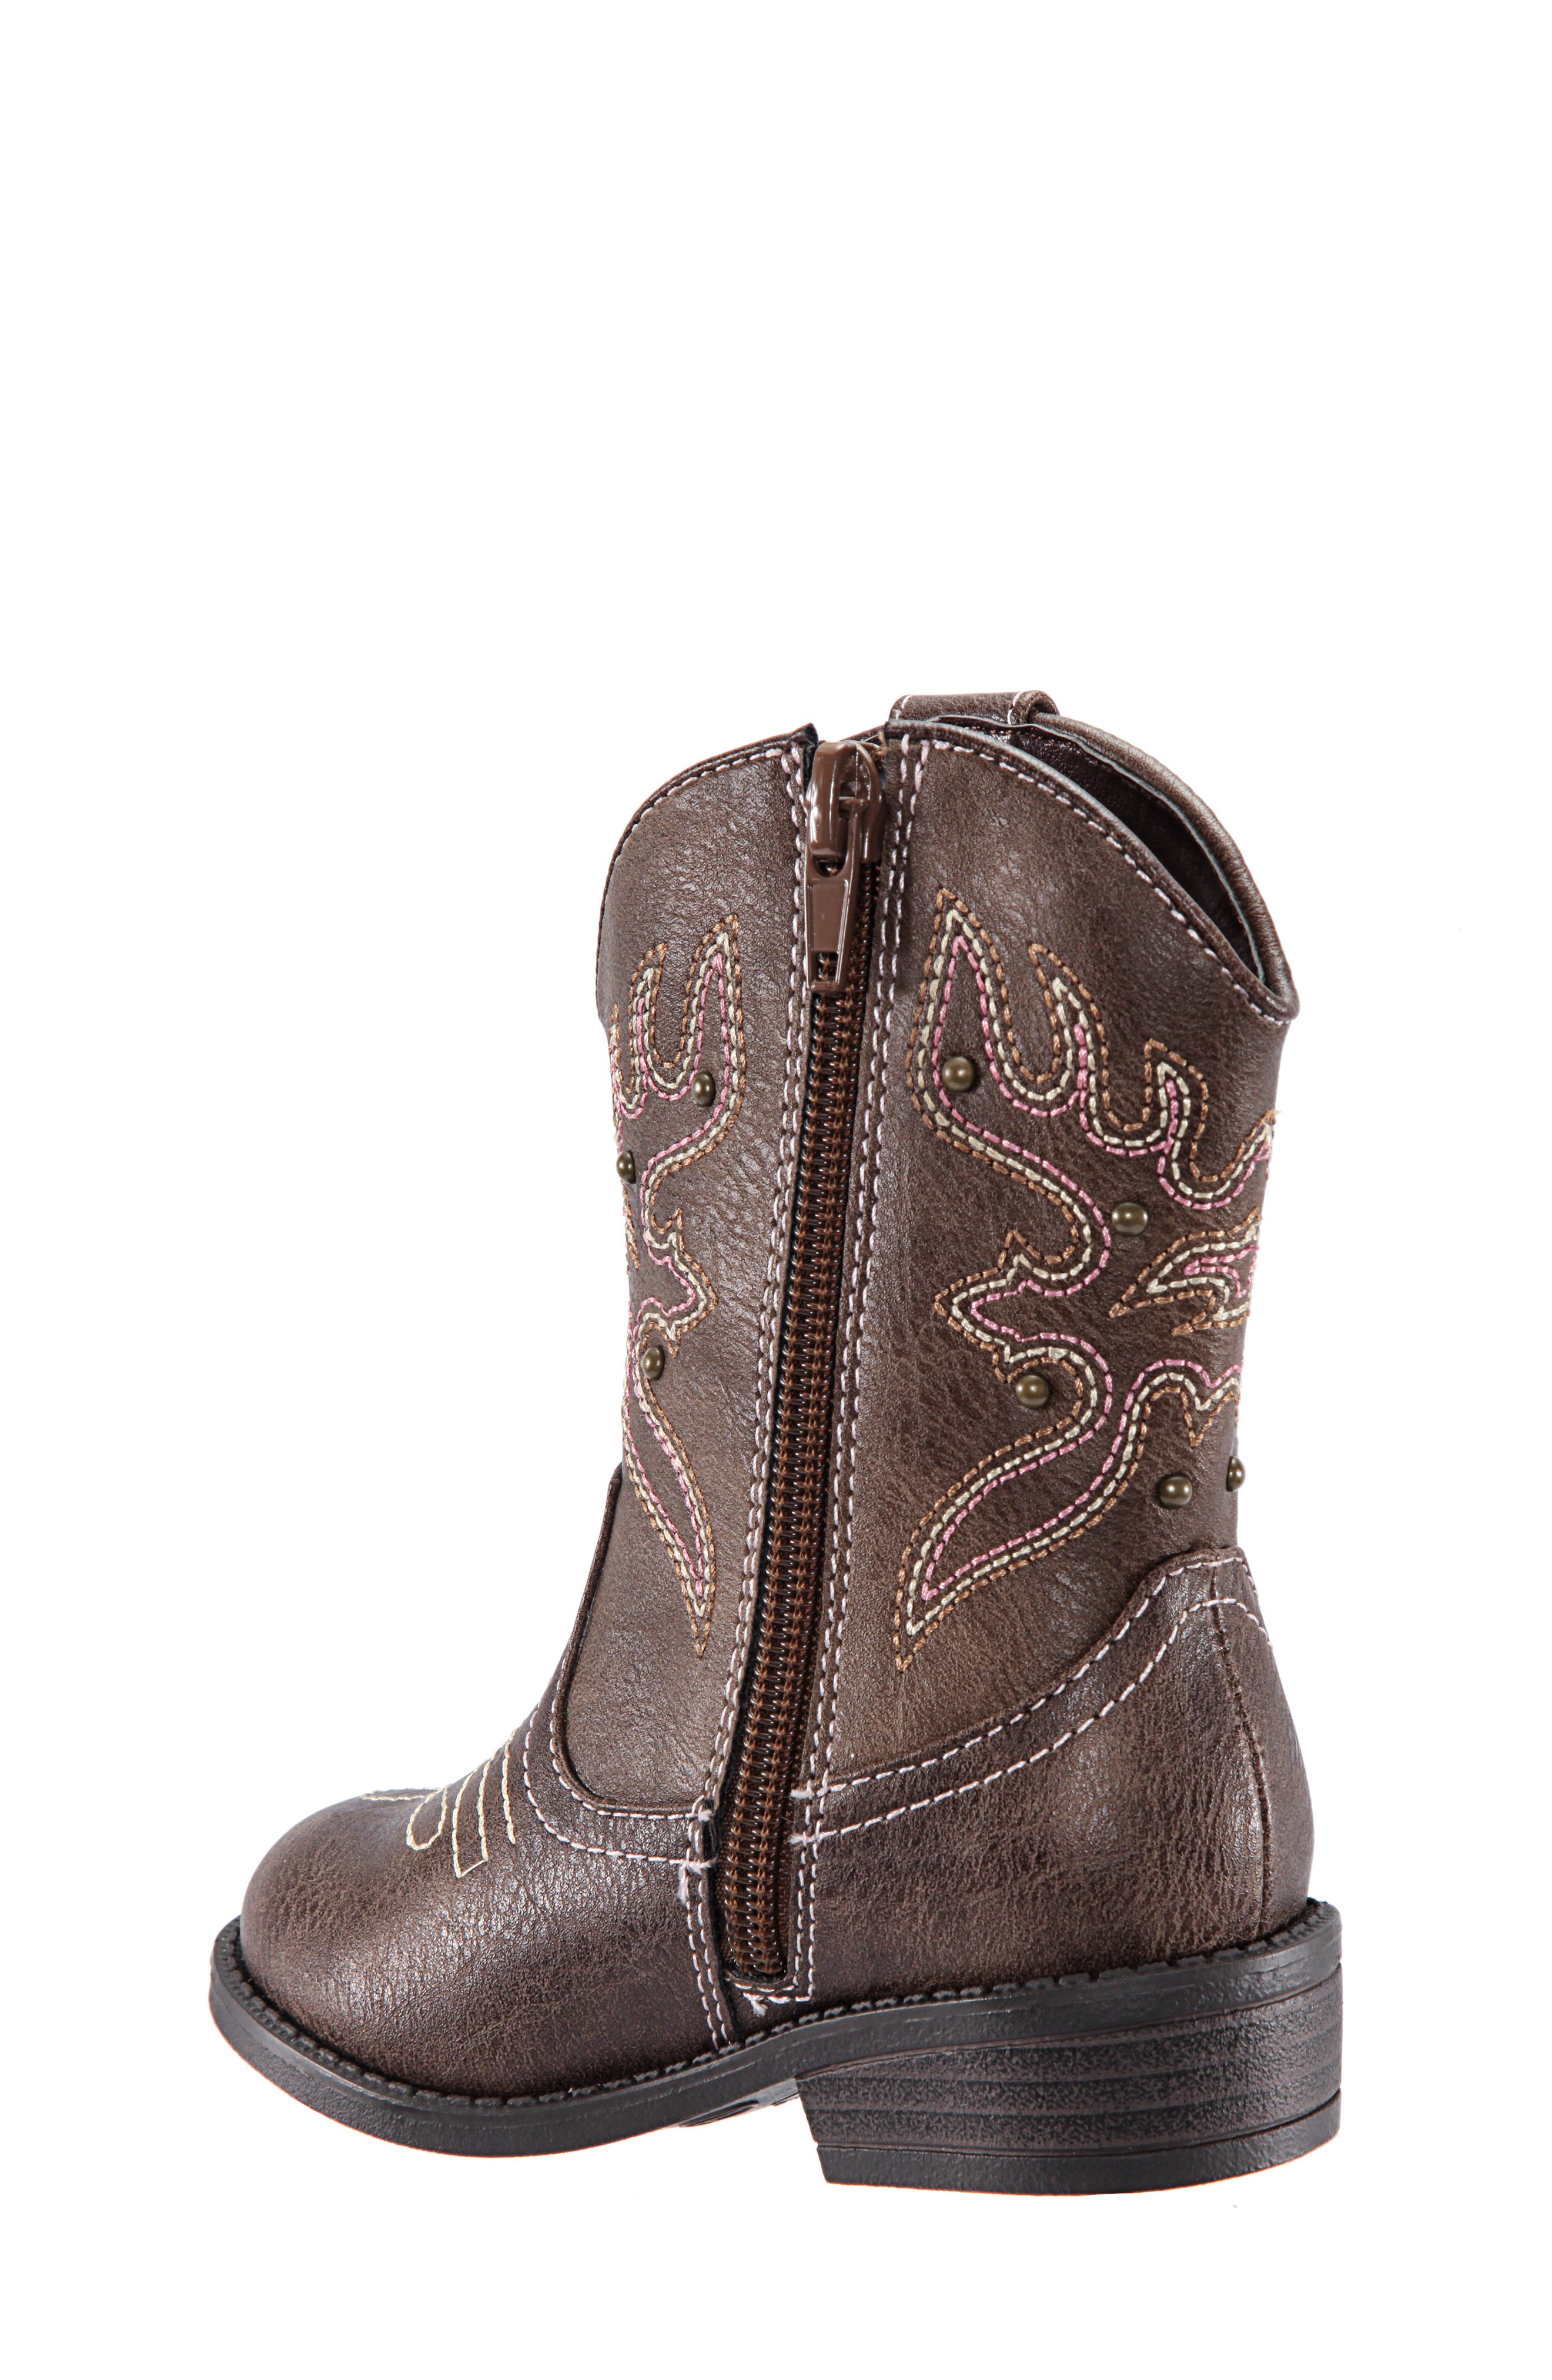 Mirabele Cowboy Boot,                             Alternate thumbnail 2, color,                             BROWN